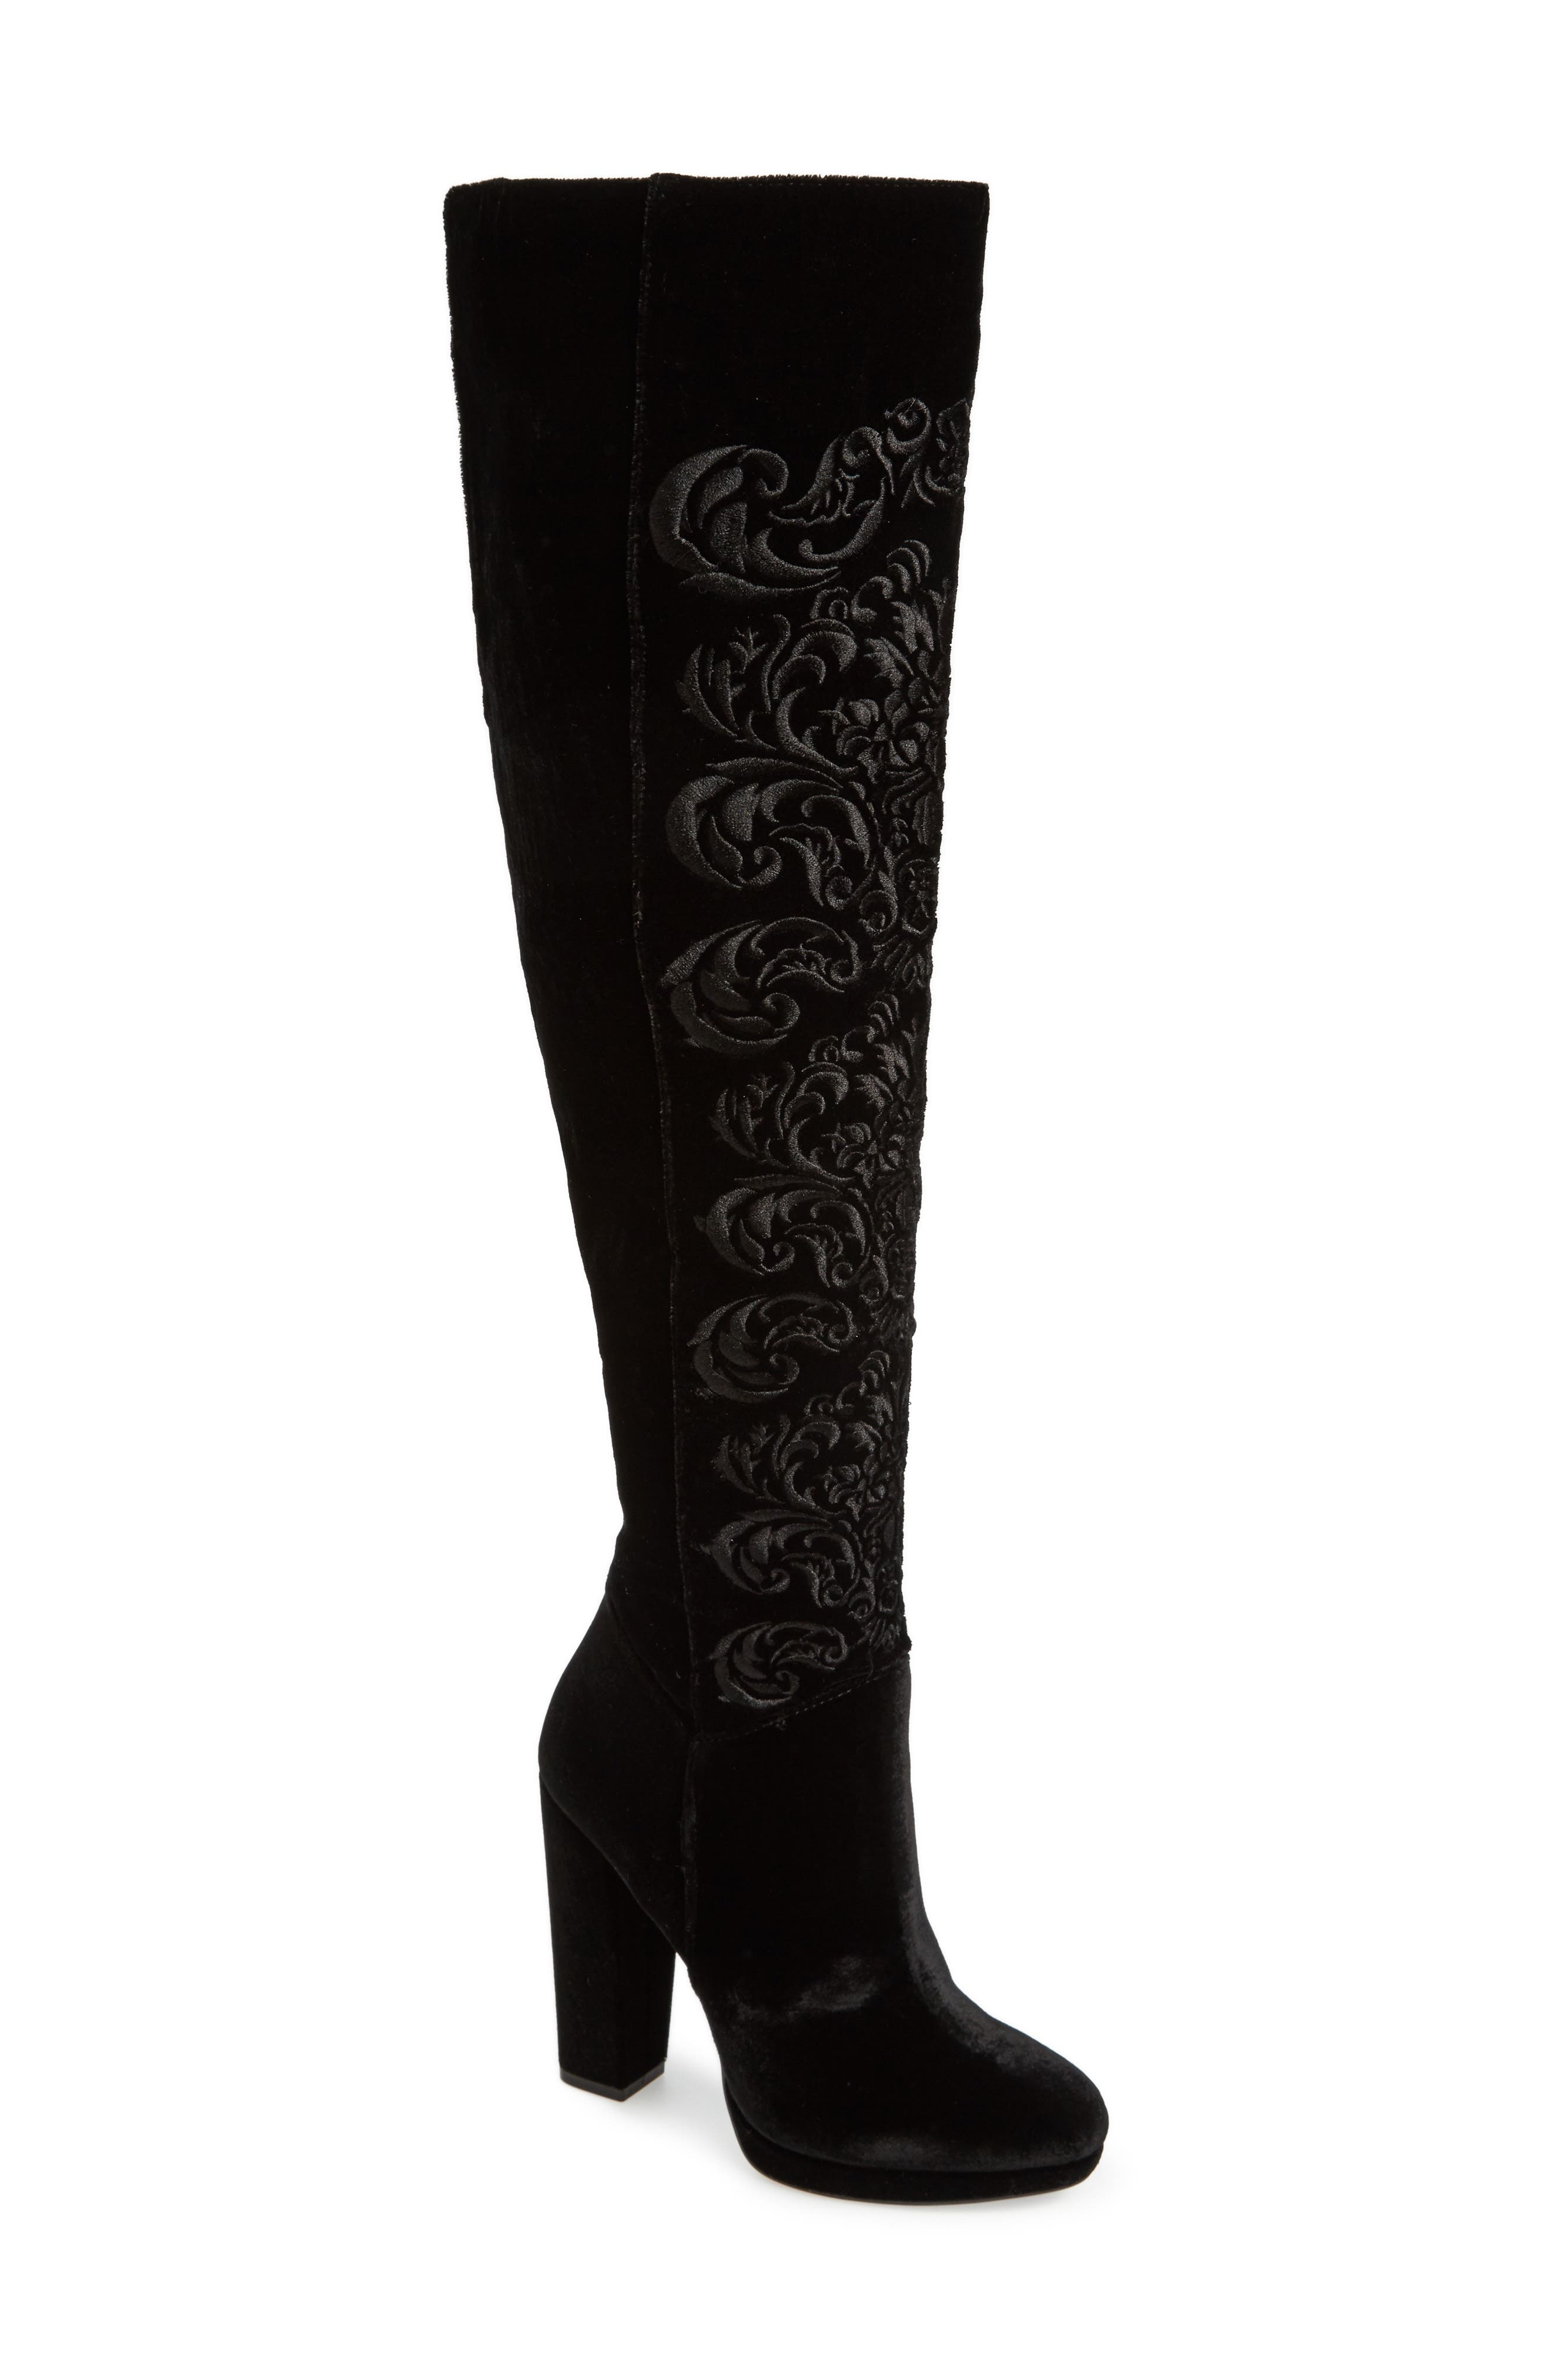 Grizella Embroidered Over the Knee Boot,                             Main thumbnail 1, color,                             001